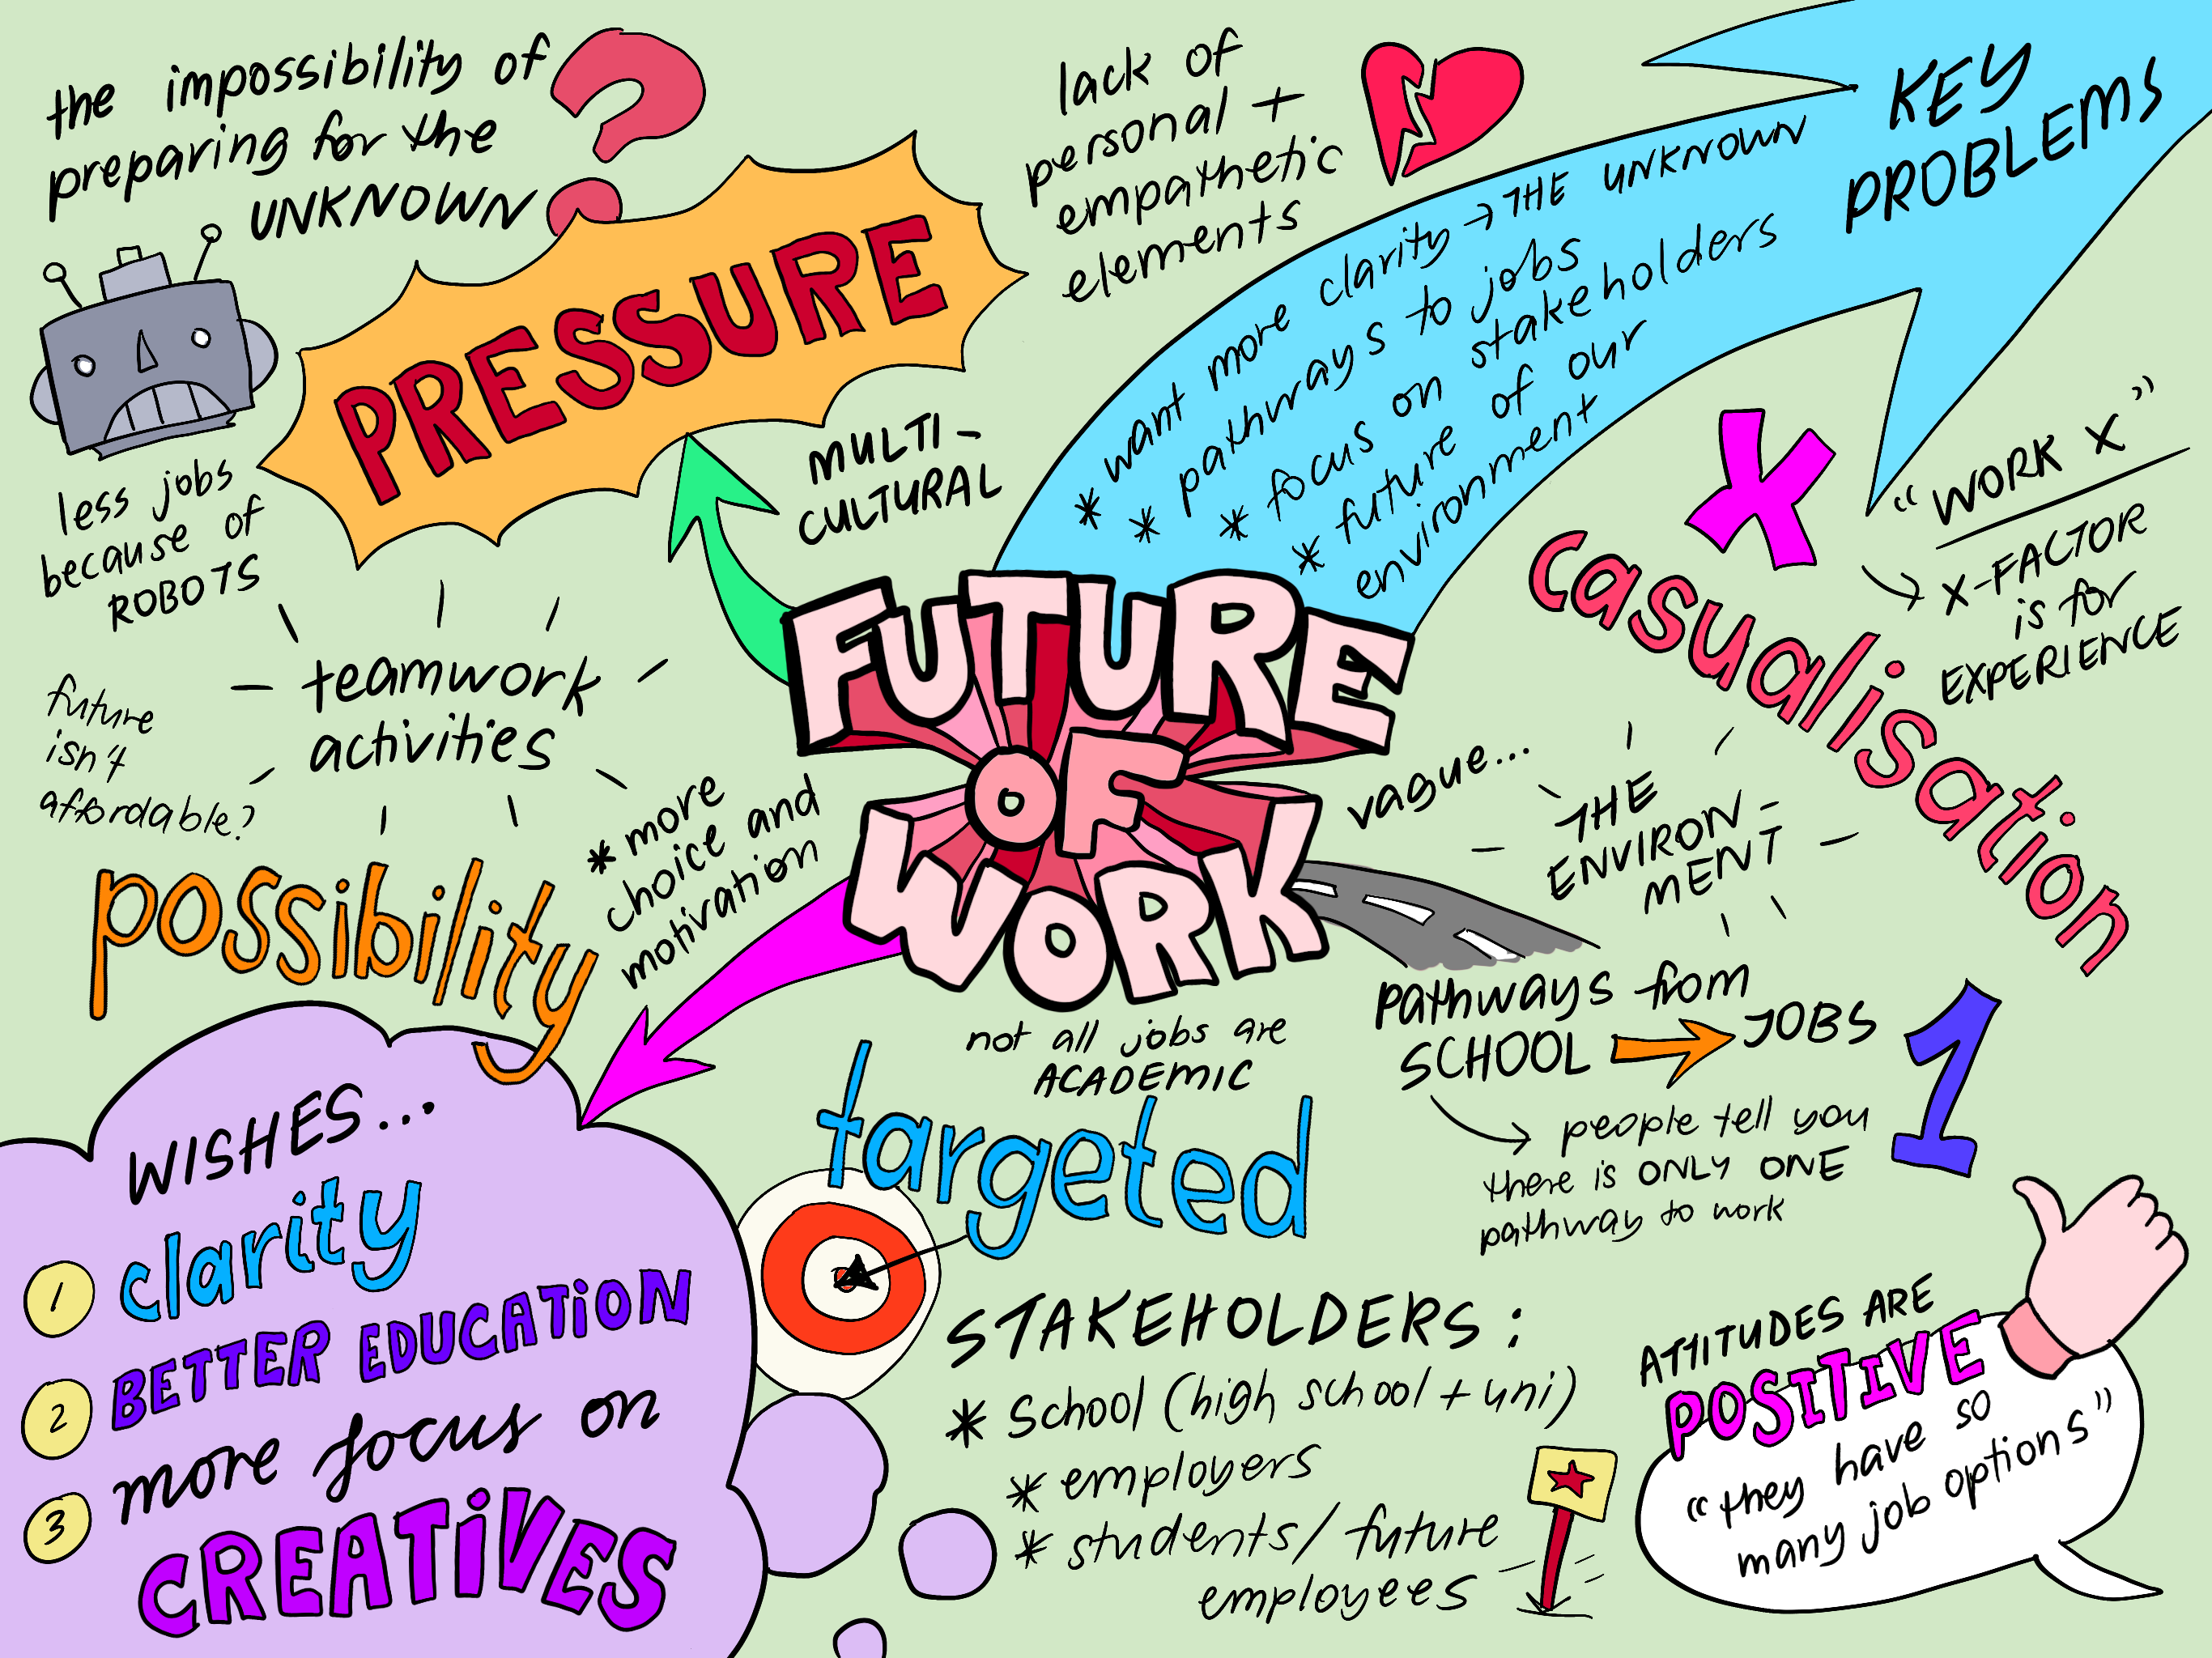 an infographic mapping out key problems surrounding the future of work